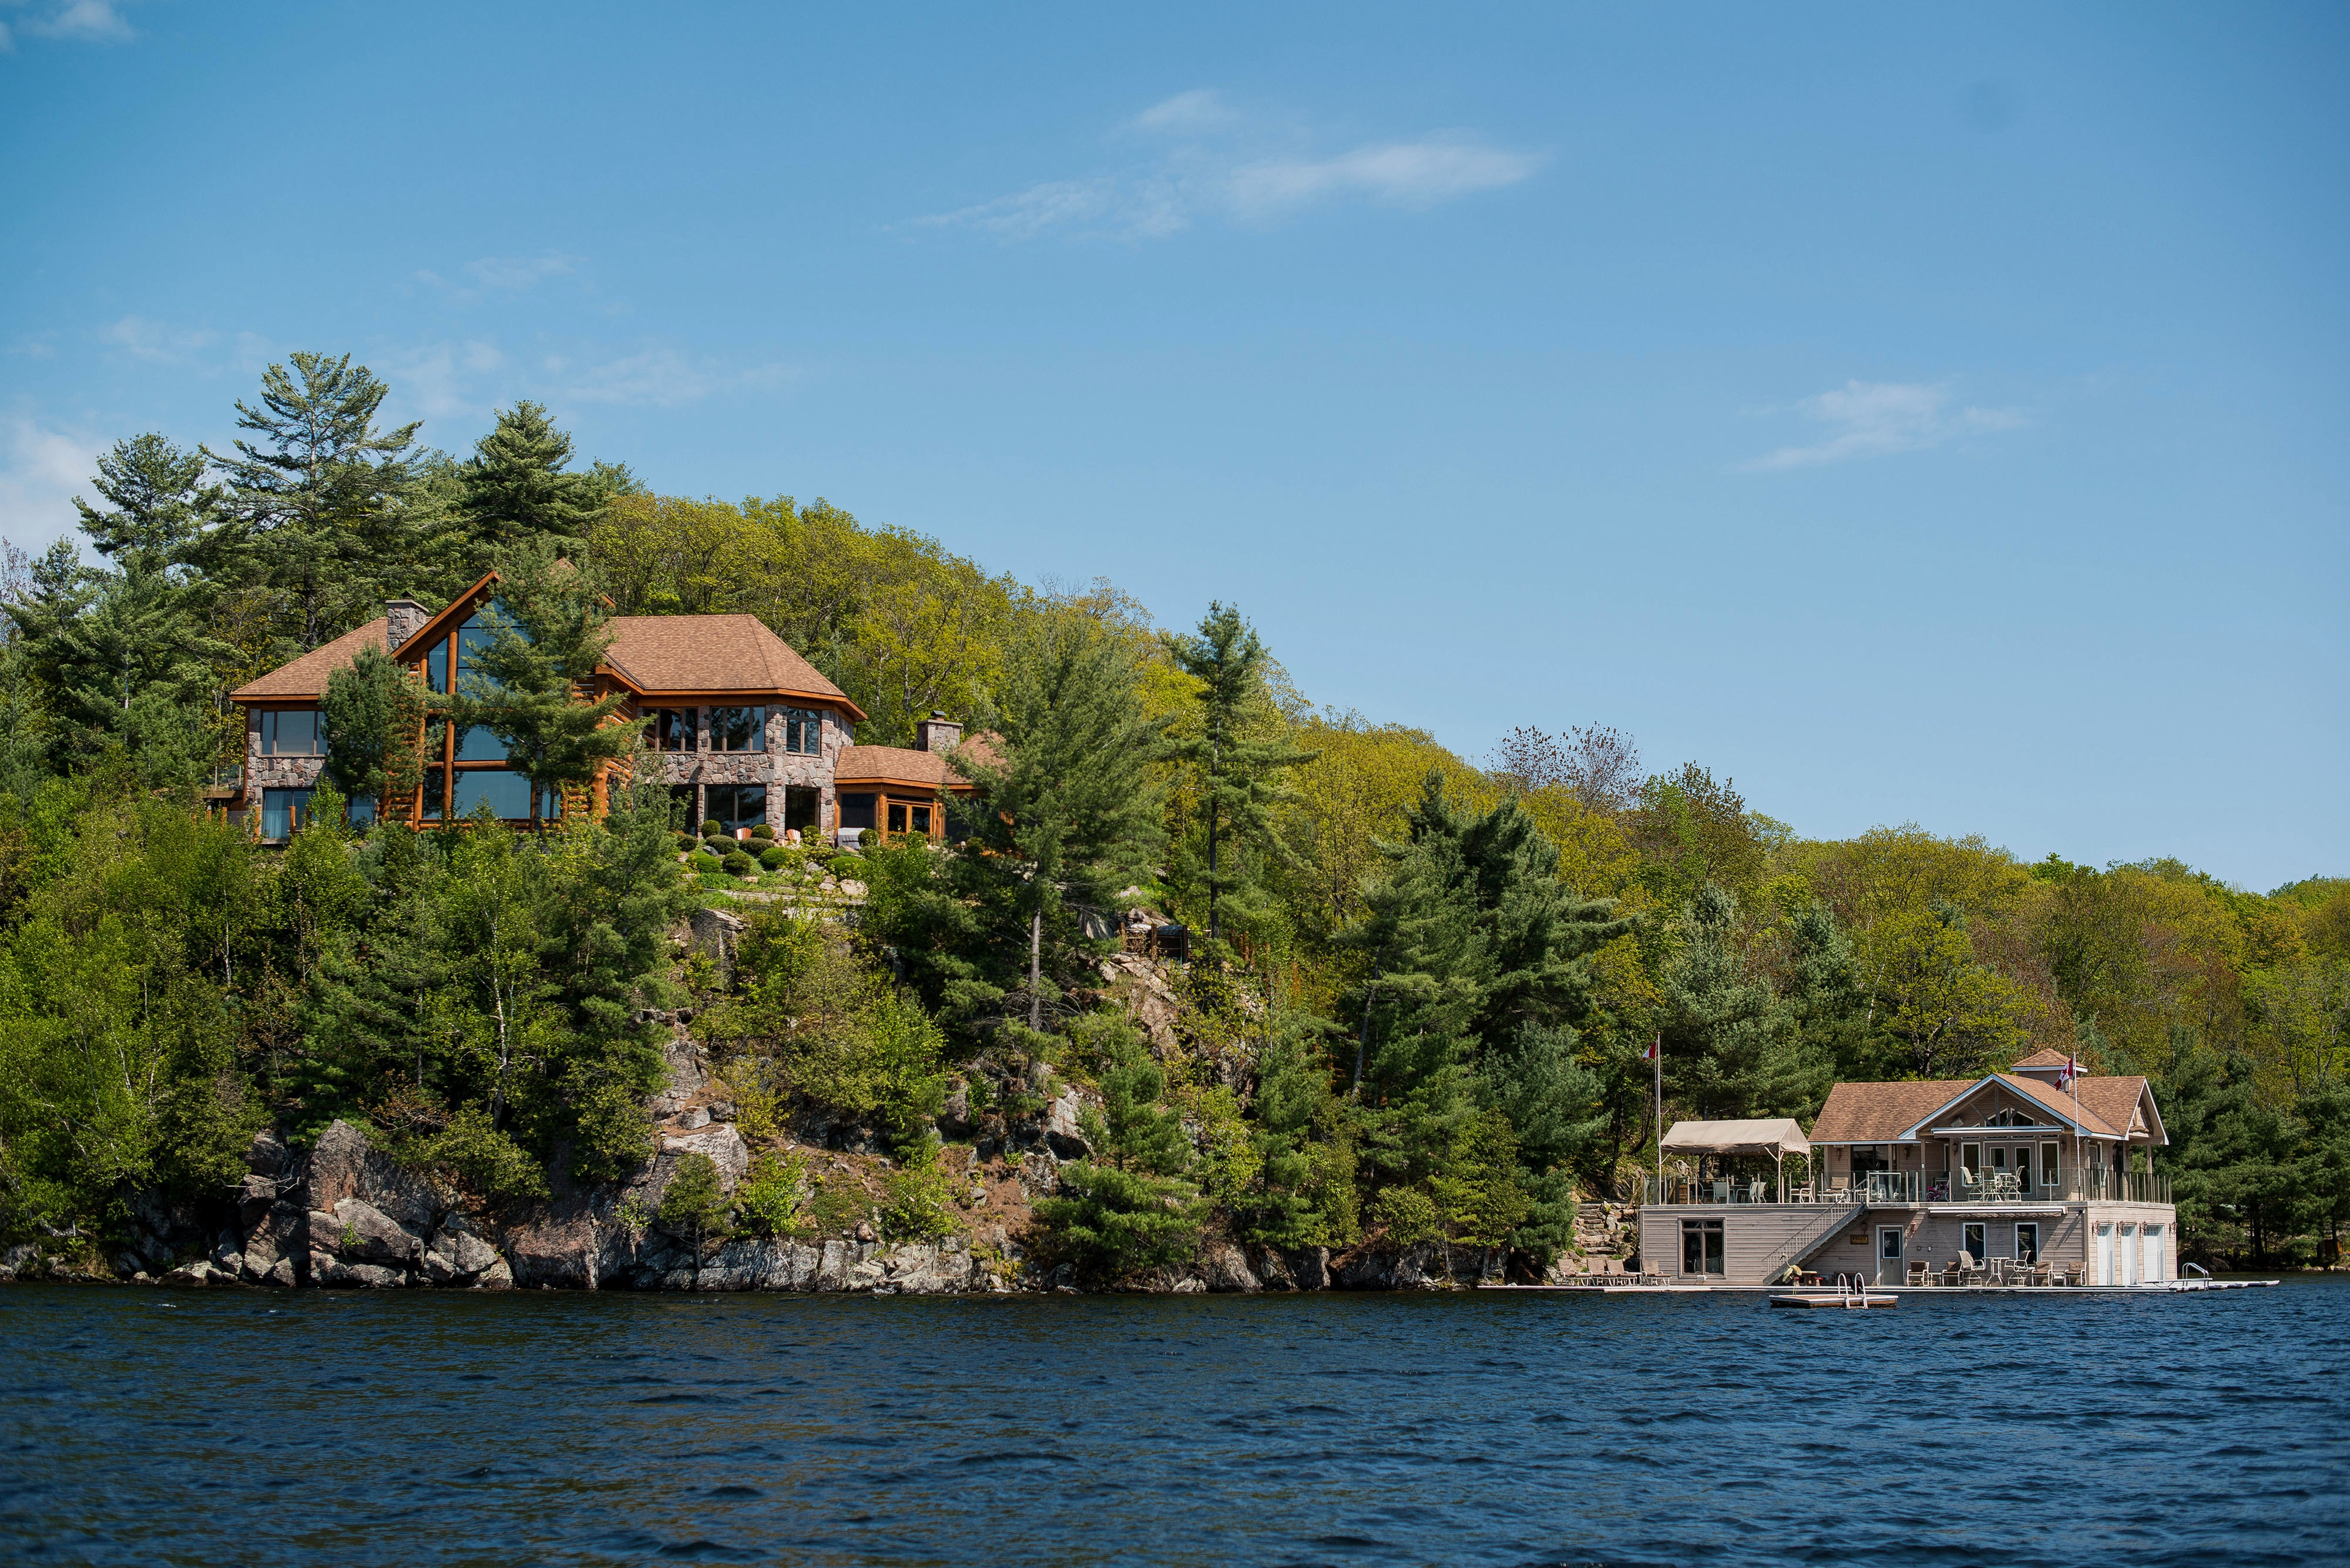 A large cottage stands on Lake Rosseau in Muskoka, Ont. Muskoka, once given away for free by the Canadian government and now a treasured spot for the titans of business, is attracting American investors who want a rustic retreat that comes with 800-thread-count sheets.